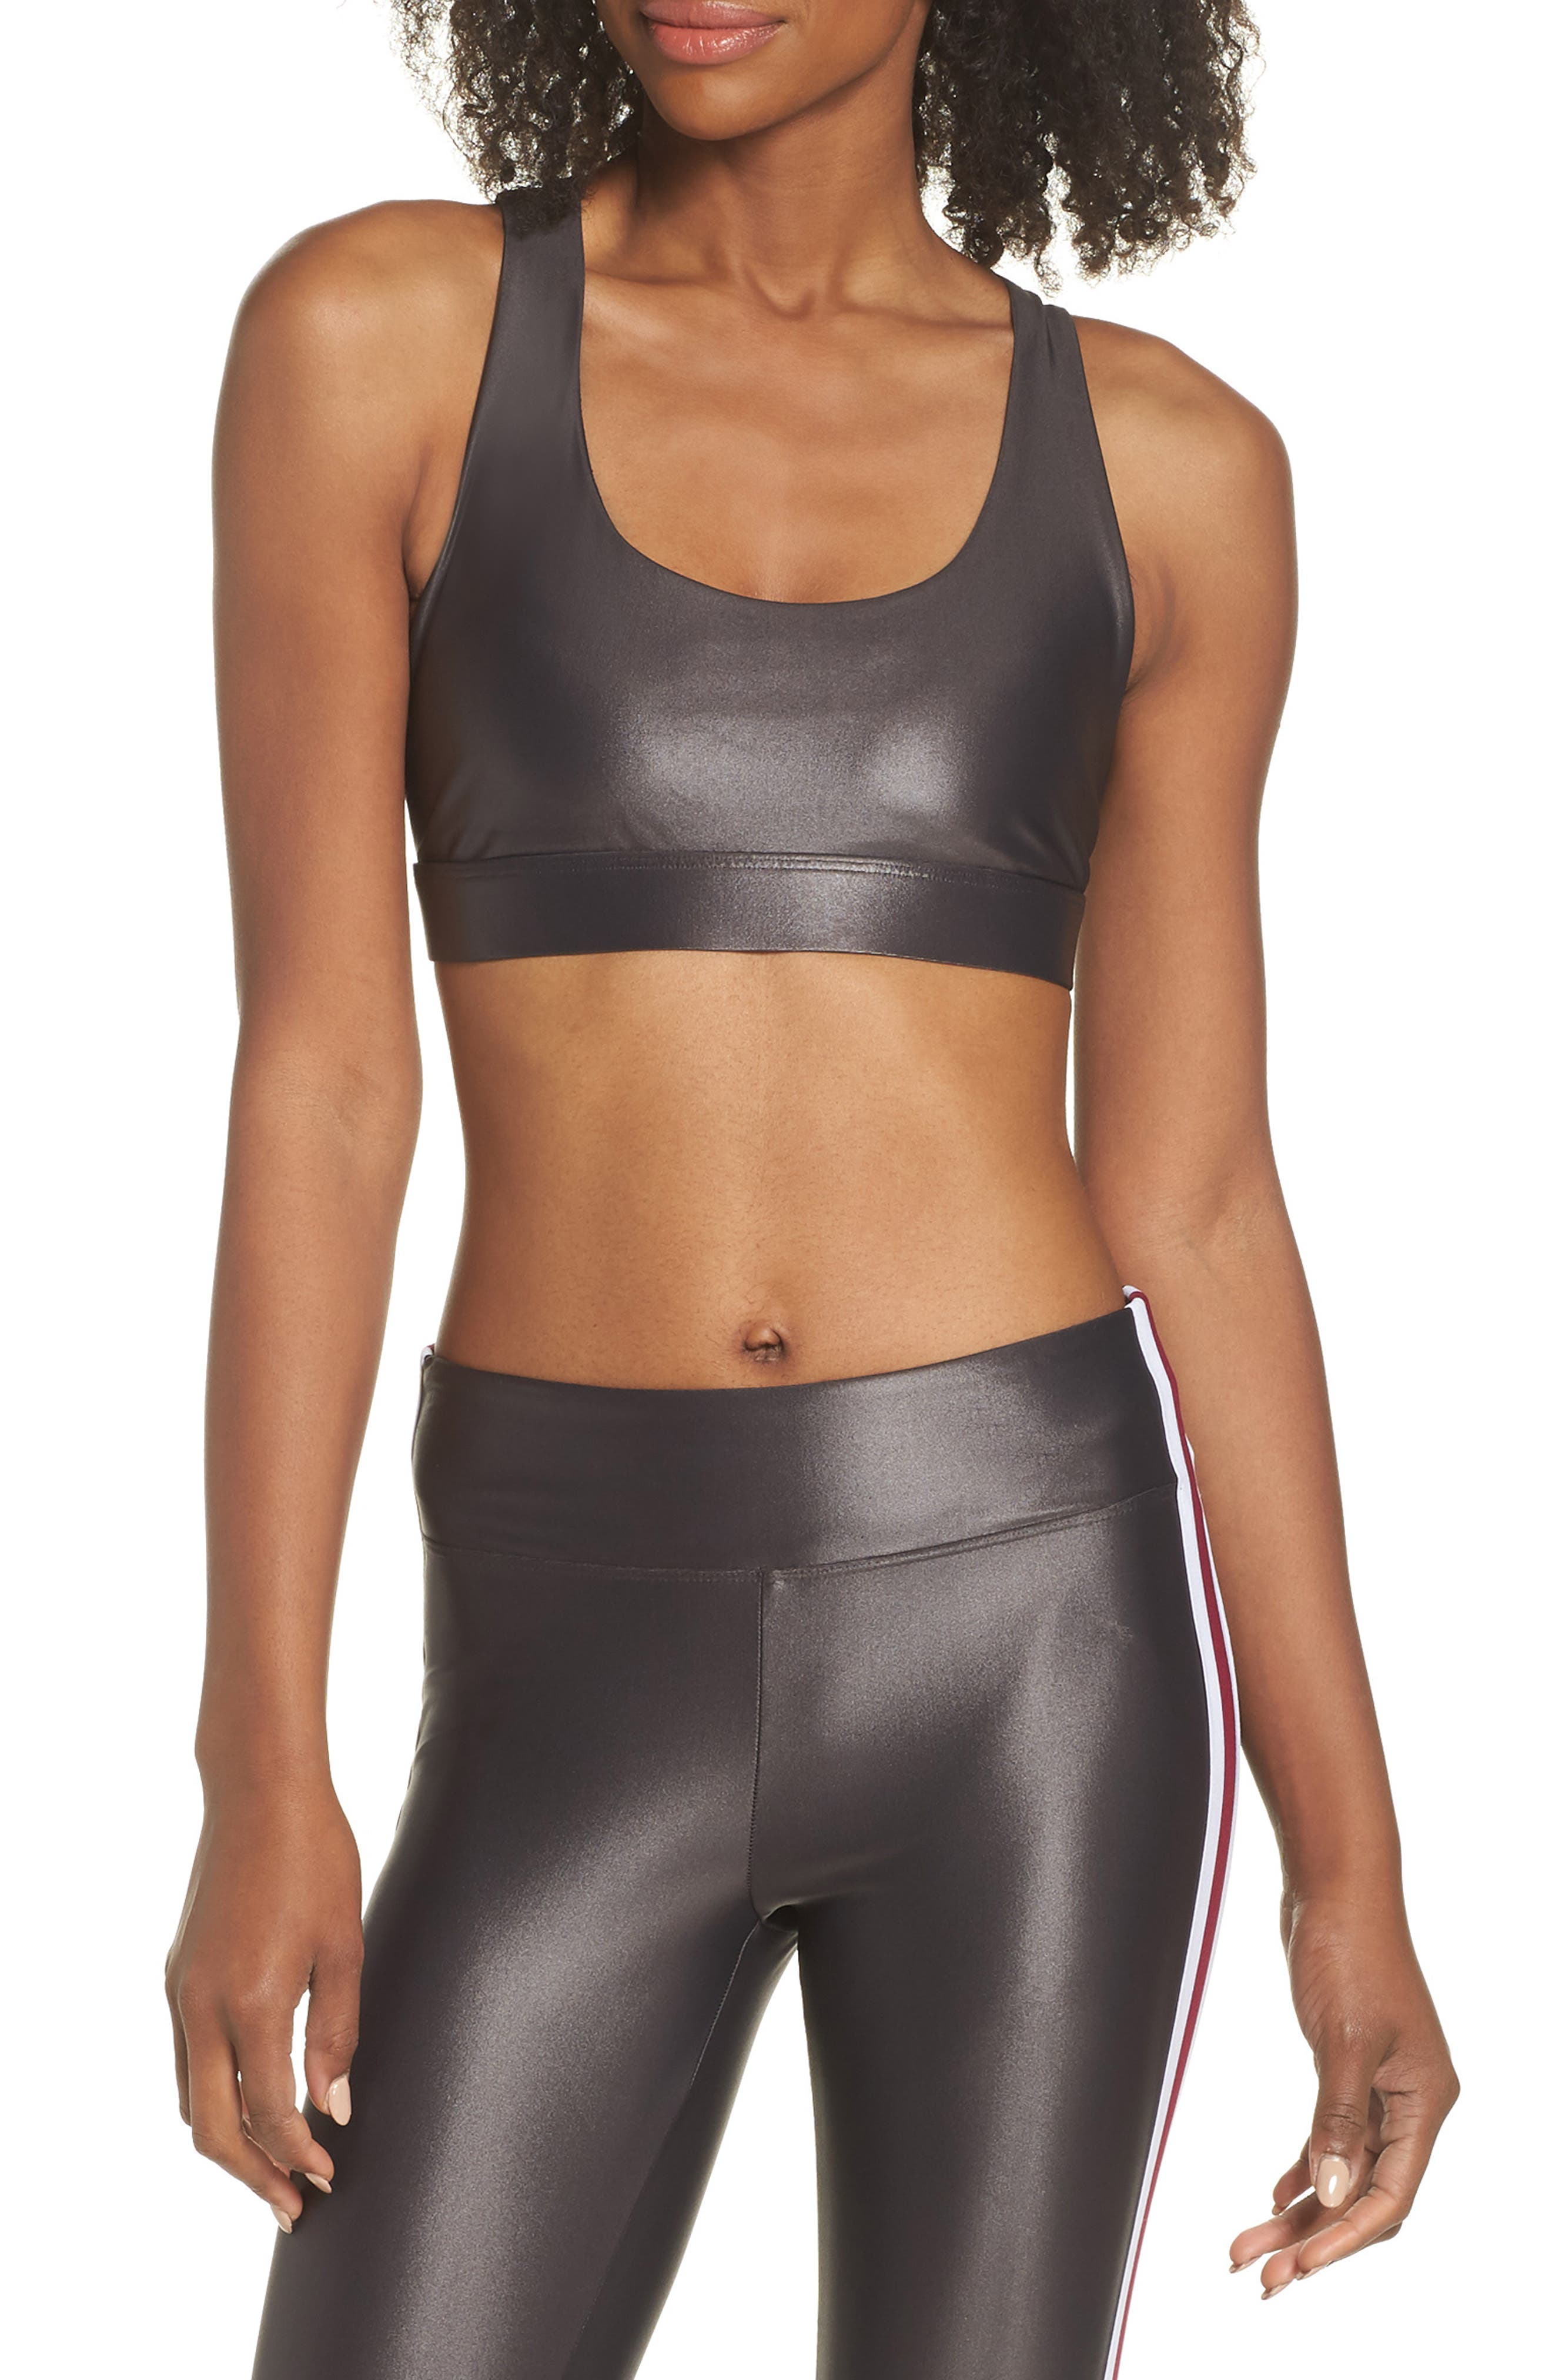 Fame Sports Bra,                             Main thumbnail 1, color,                             LEAD